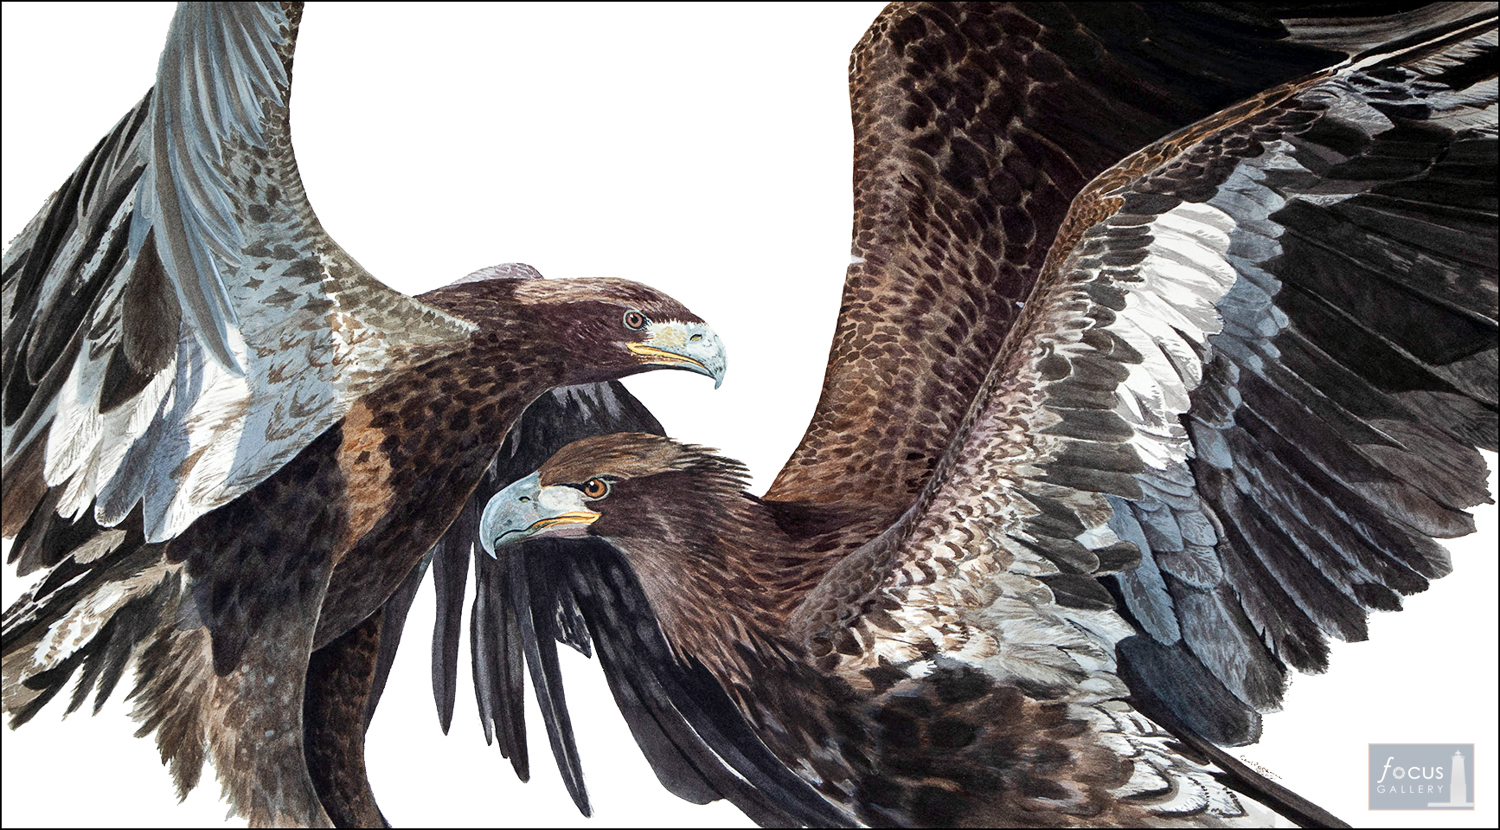 Original watercolor painting of two immature Bald Eagle birds fighting.